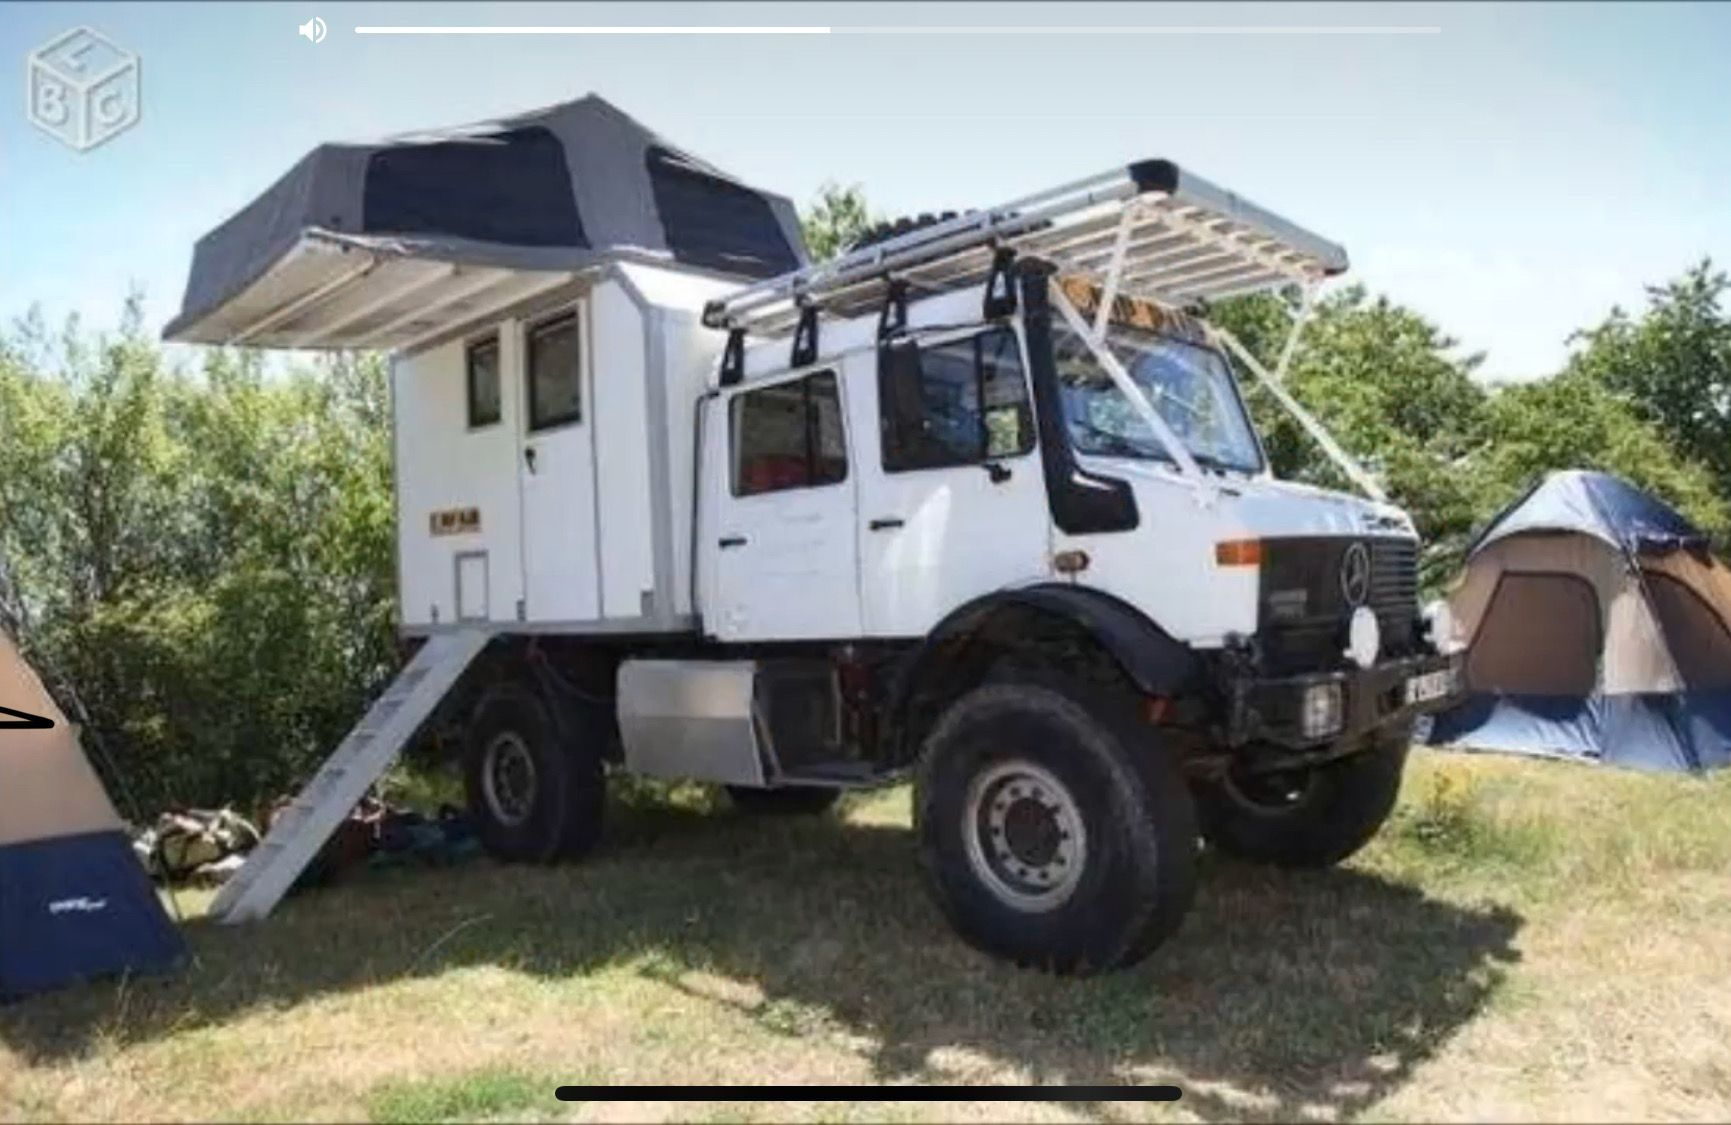 Awesome Photo Of Unimog Camper Unimog Expedition Vehicle